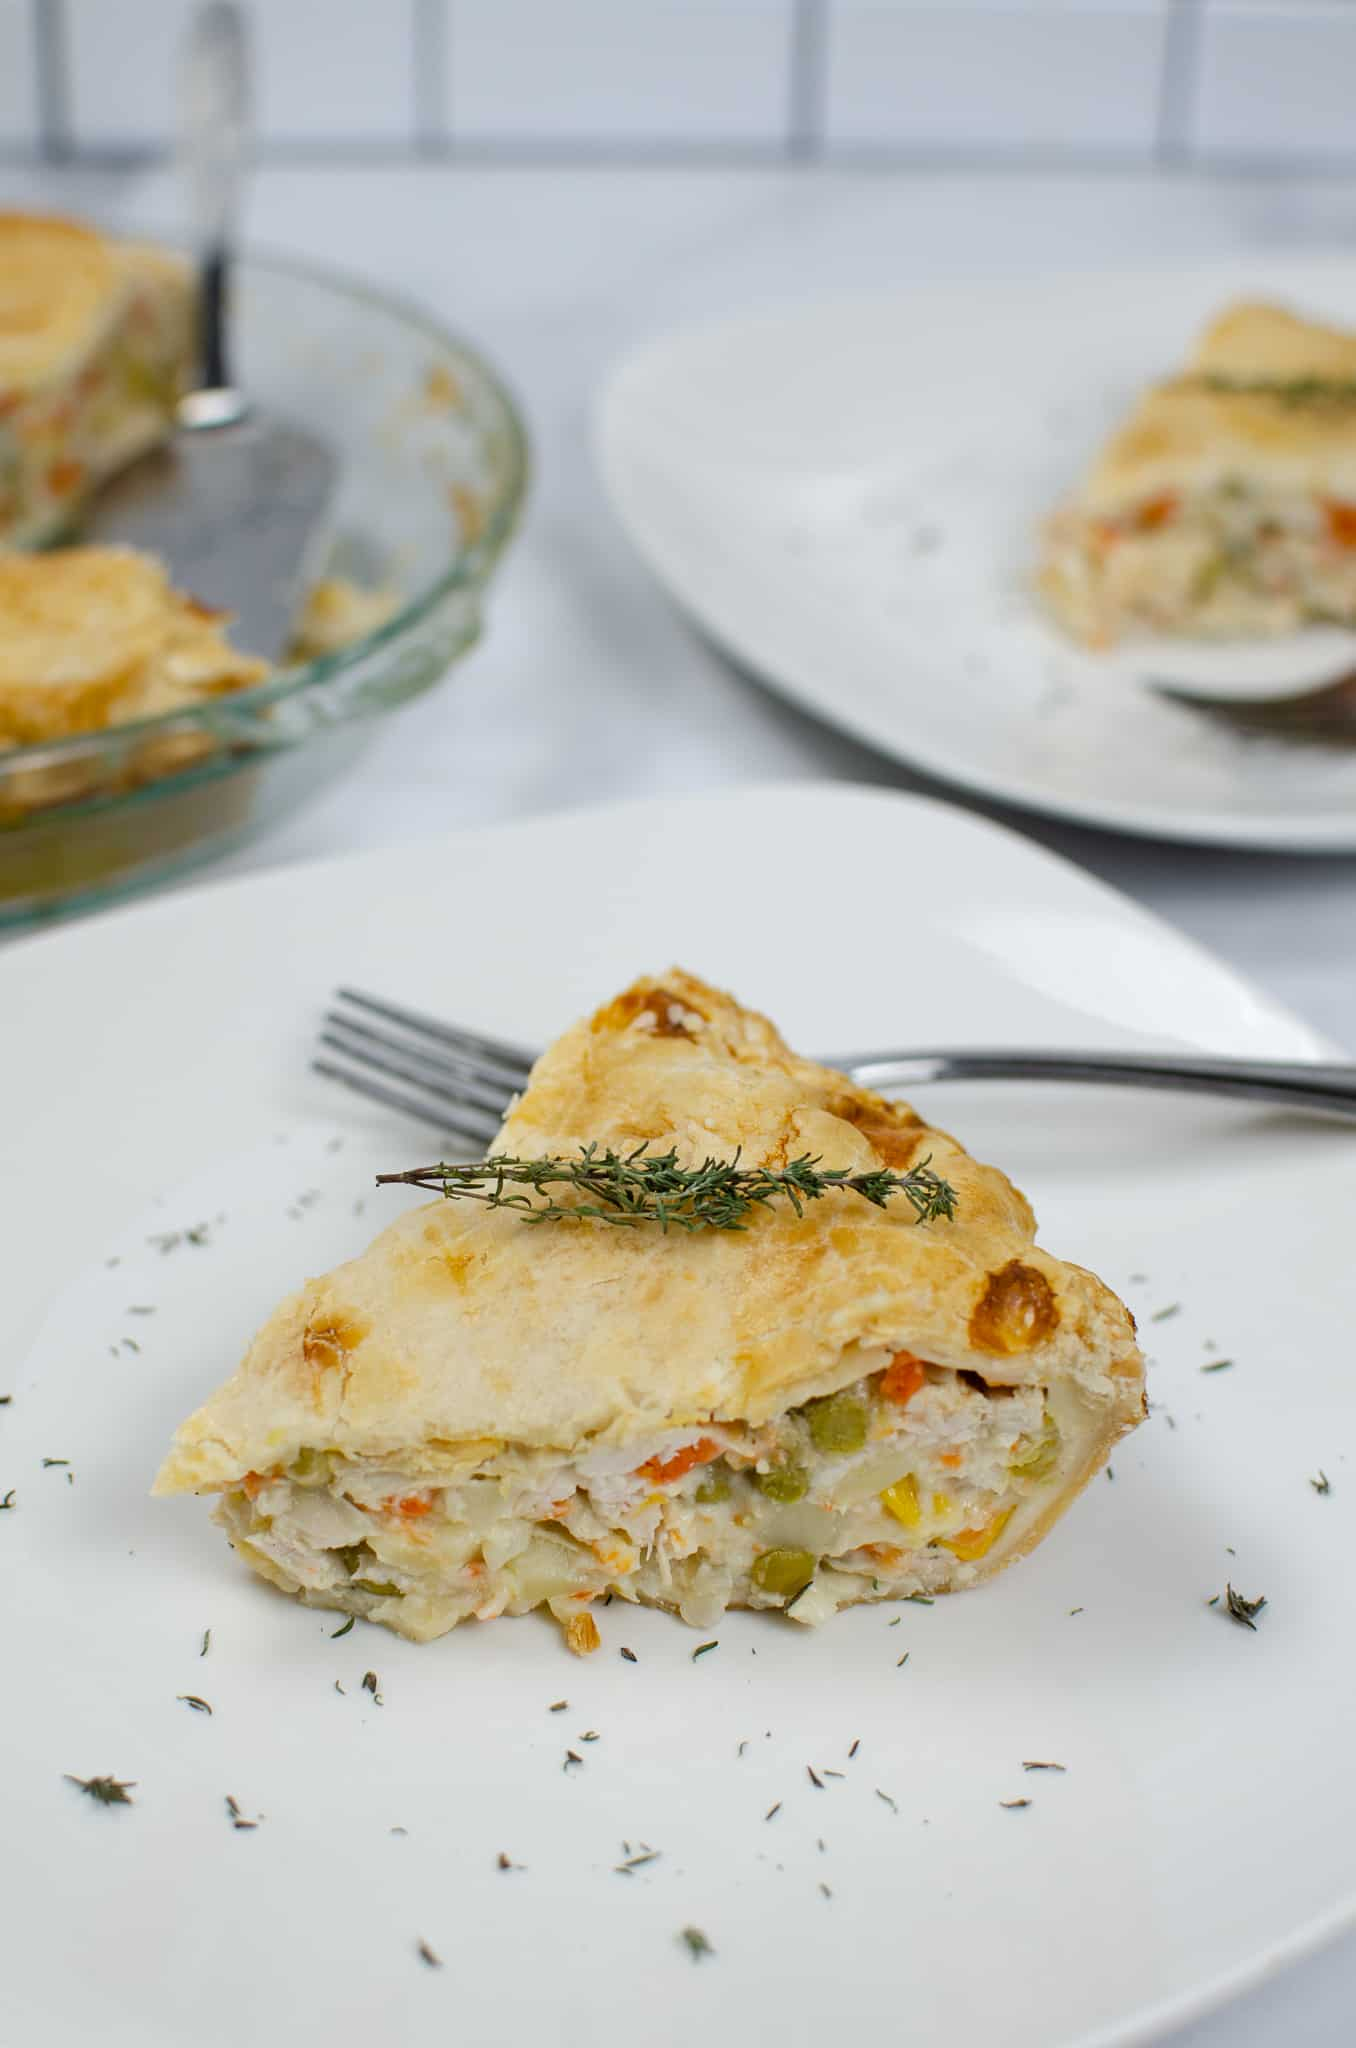 Plate with Turkey Pot Pie with fork and sprig of thyme